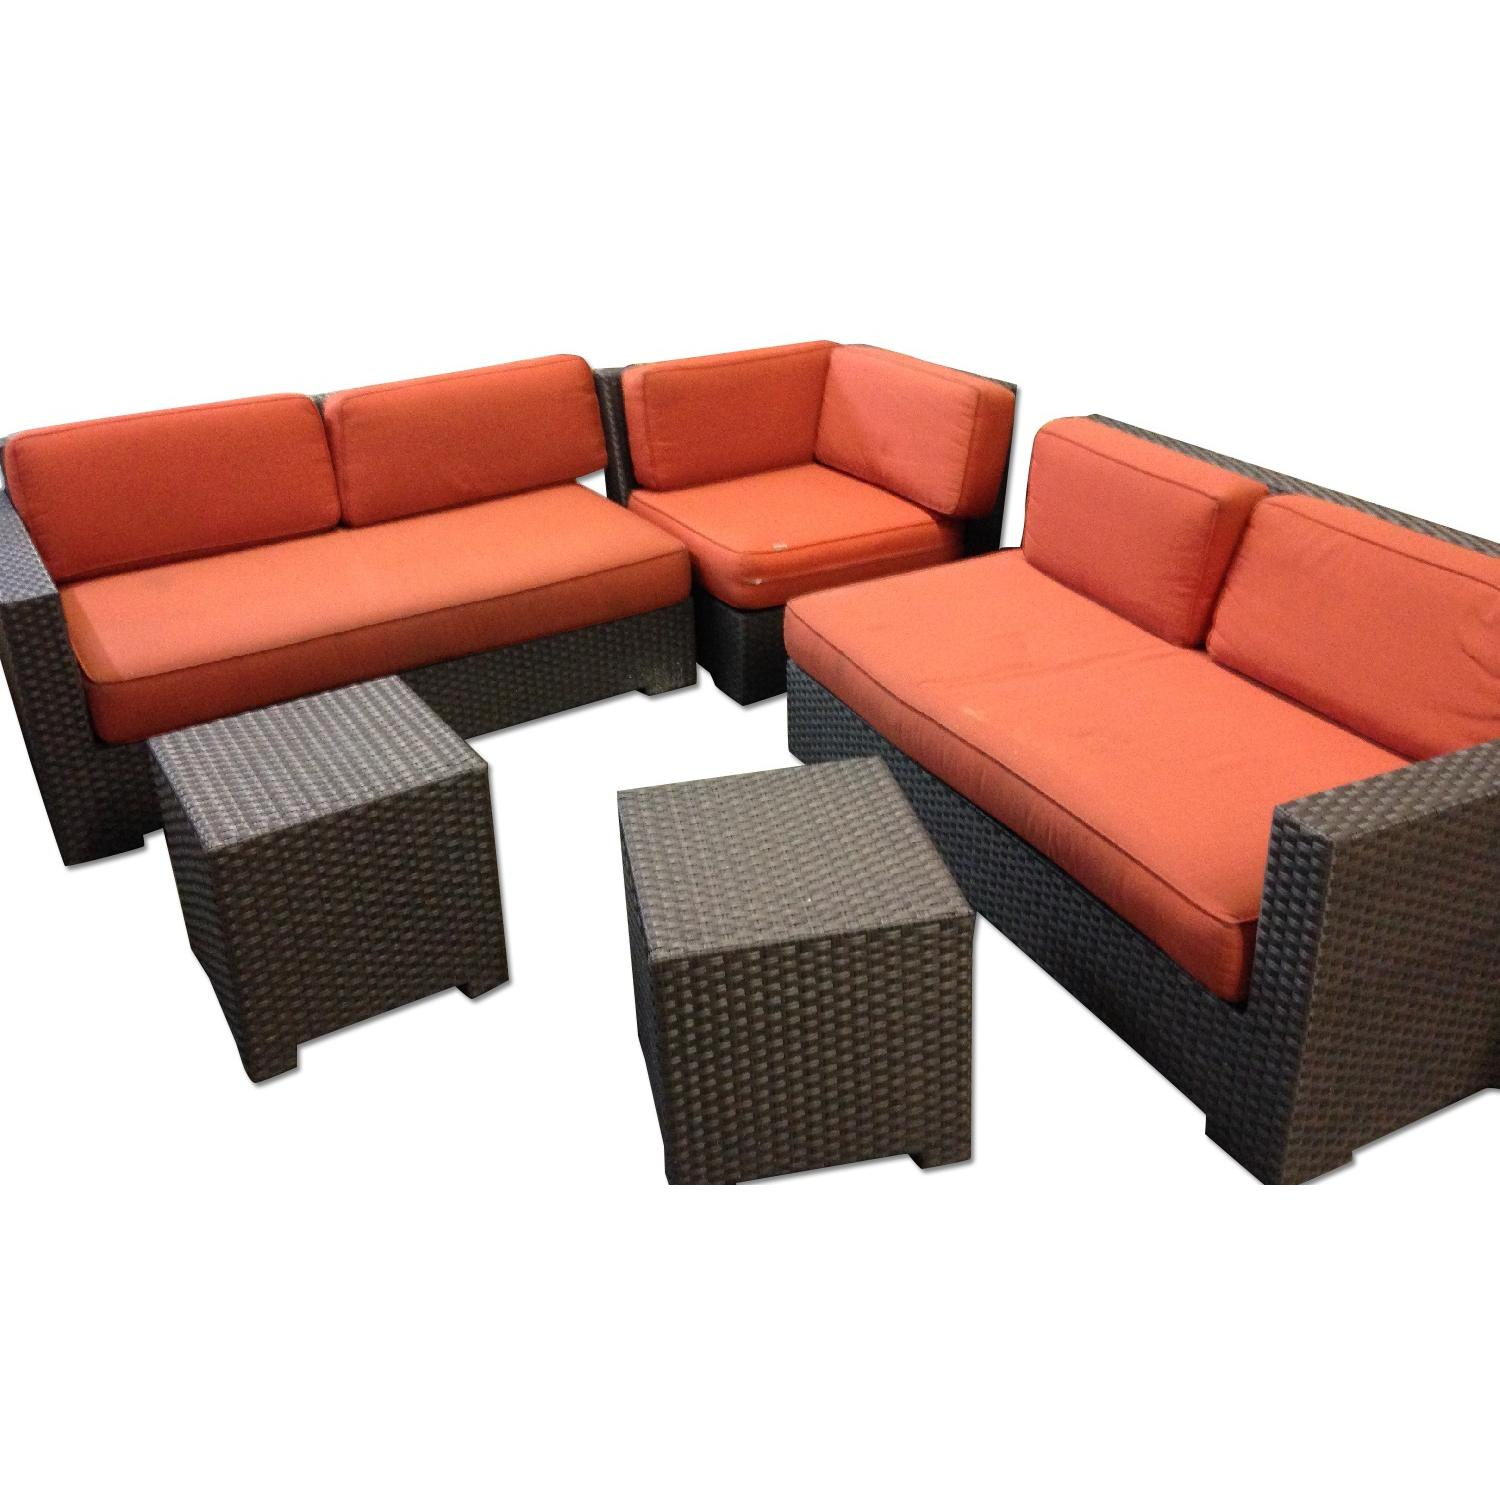 Crate & Barrel Ventura Modular 3 Piece Sectional & 2 Bunching Tables - image-0